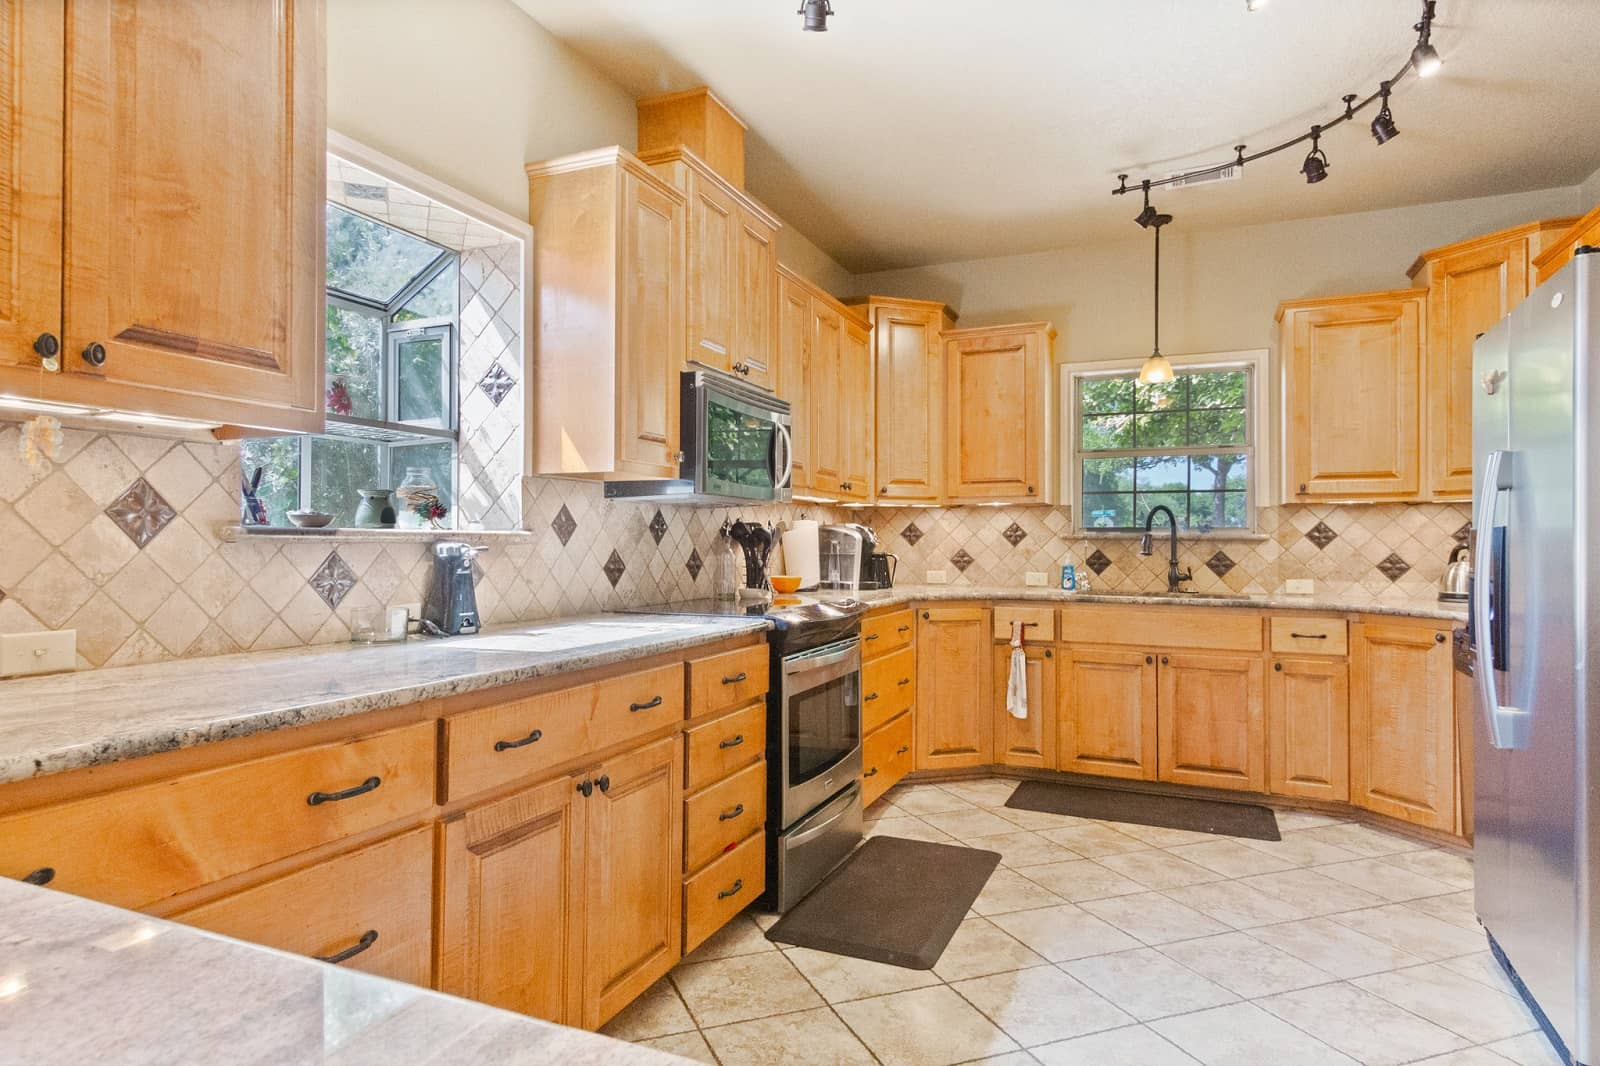 Real Estate Photography in San Marcos - TX - Kitchen View